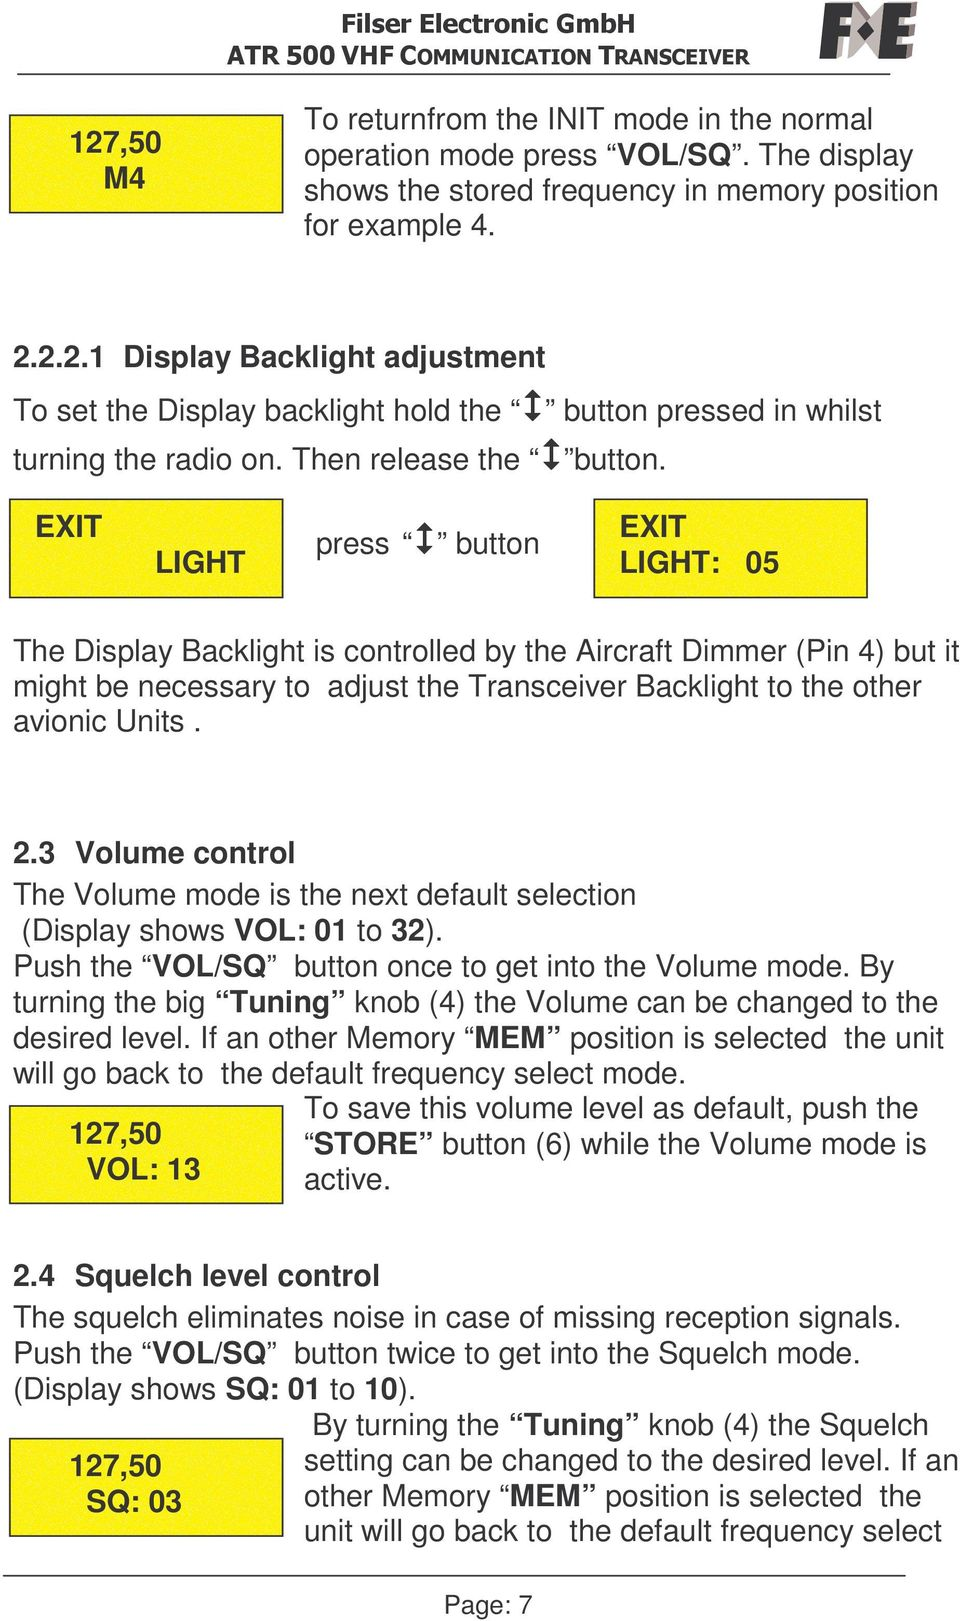 EXIT LIGHT press button EXIT LIGHT: 05 The Display Backlight is controlled by the Aircraft Dimmer (Pin 4) but it might be necessary to adjust the Transceiver Backlight to the other avionic Units. 2.